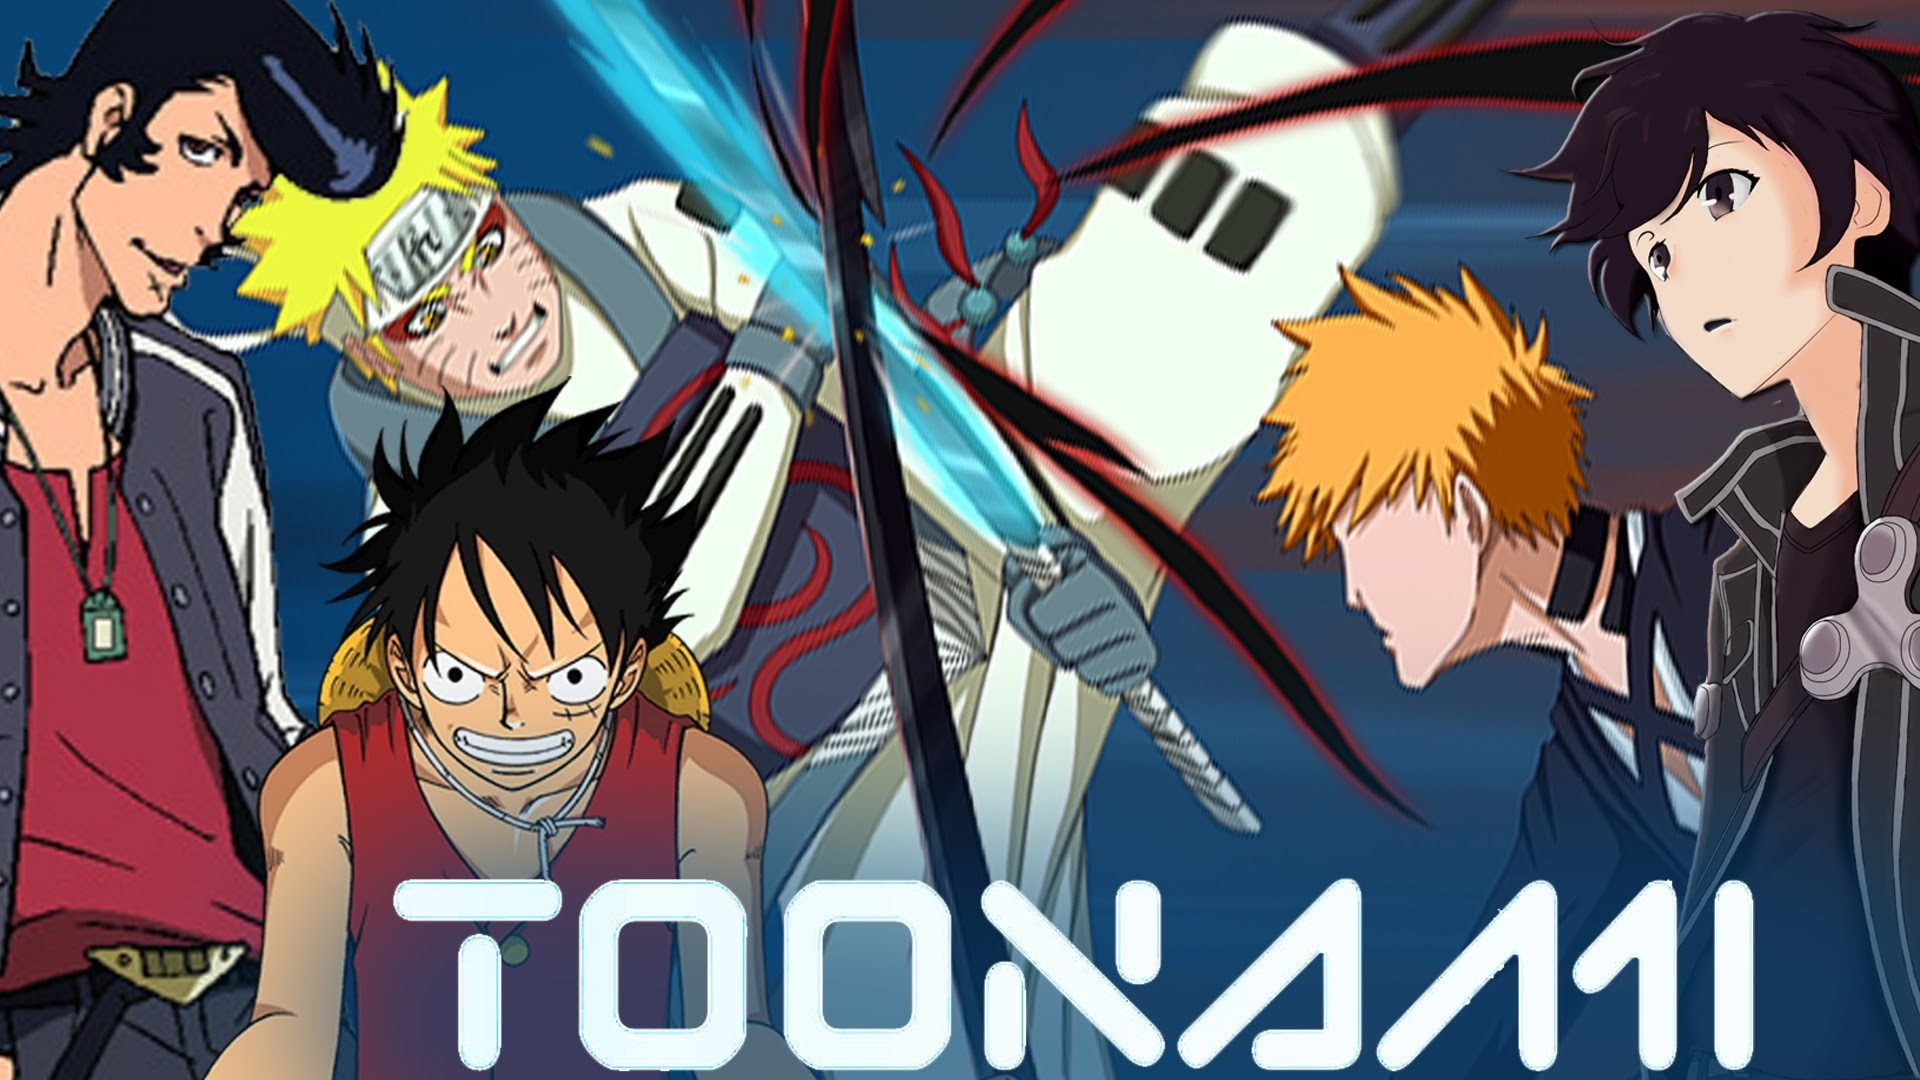 1920x1080 Huge Toonami News: New Time & World Premiere of Space Dandy Anime - YouTube